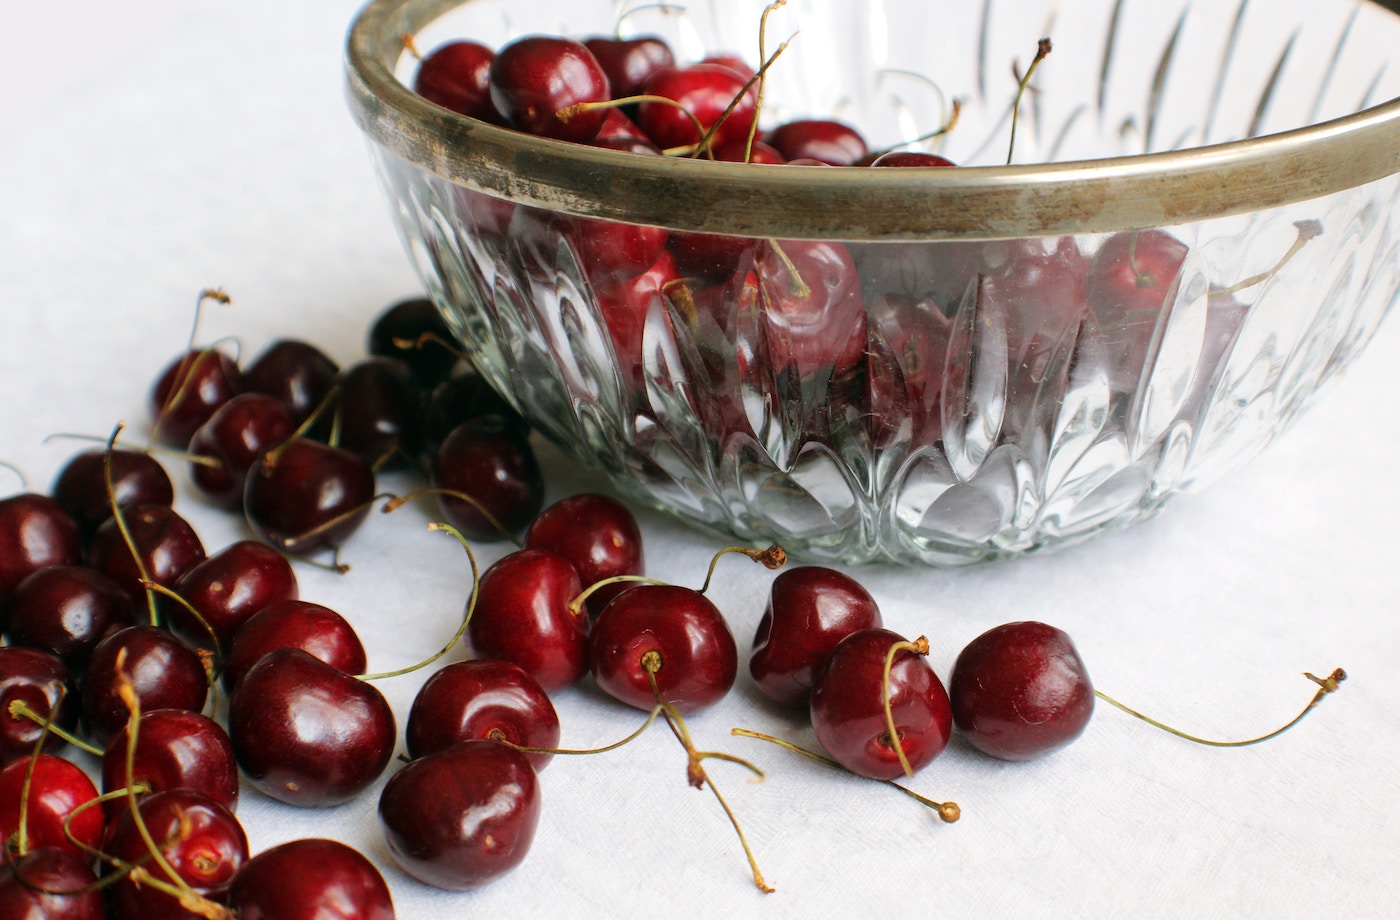 Cherries are the bedtime snack you didn't know you needed